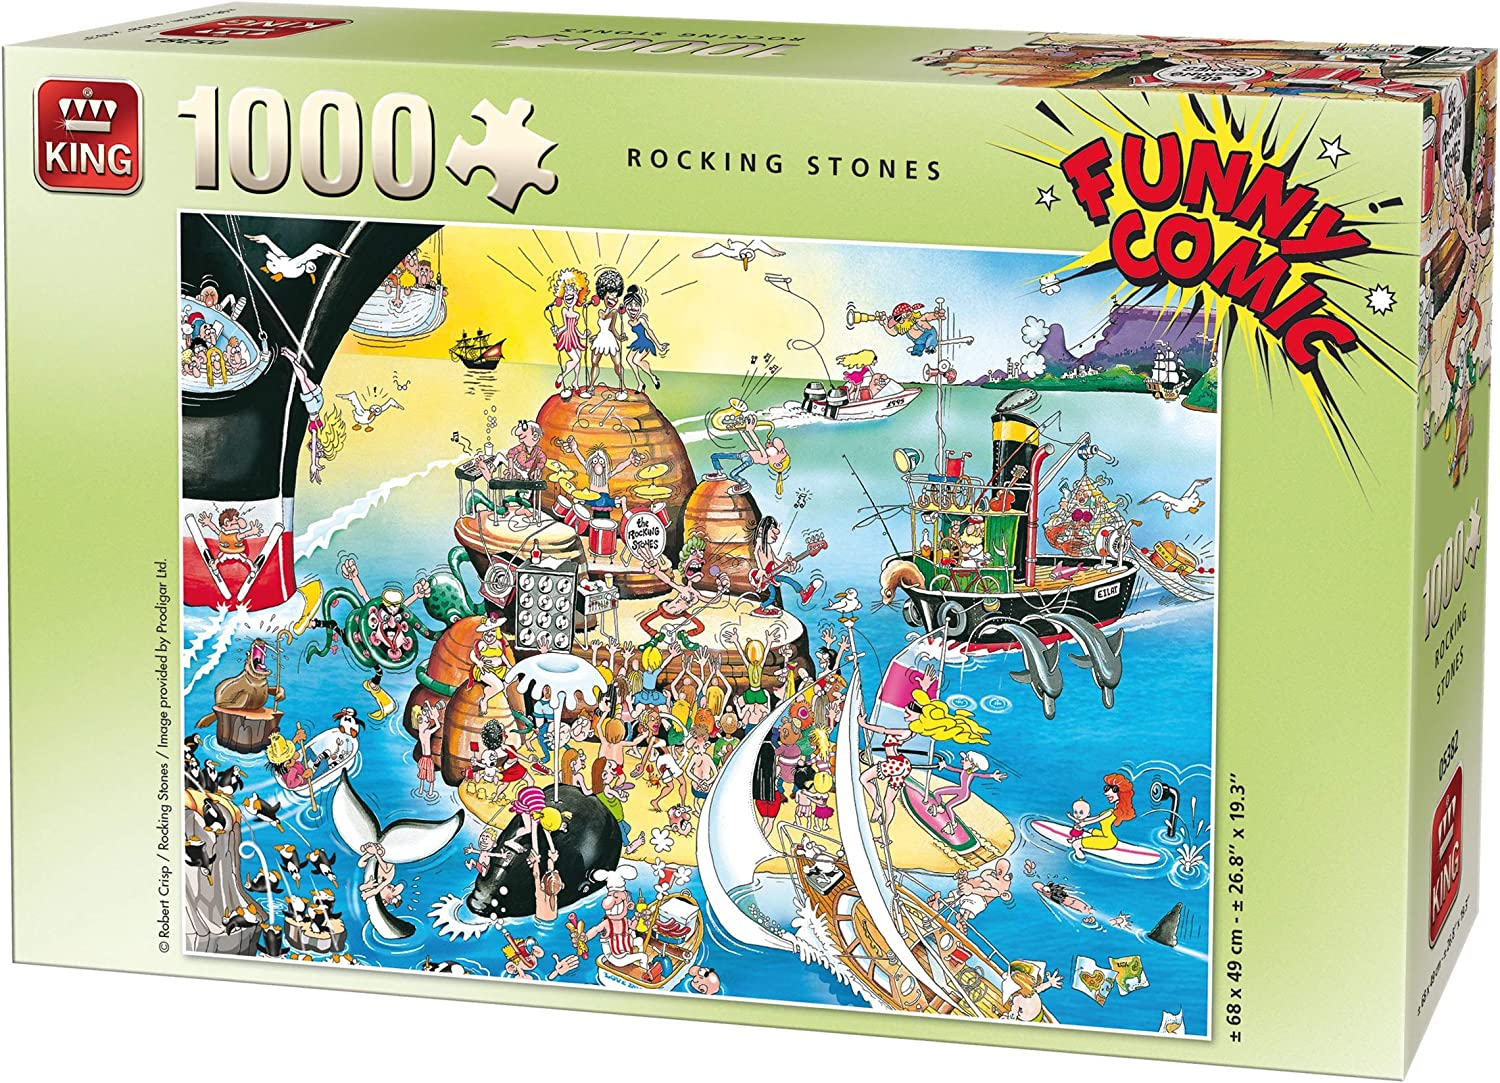 King Funny Comic Rocking Stones 1000 pcs Puzzle - Rompecabezas (Puzzle Rompecabezas, Comics, Adultos, Prodigar, Hombre/Mujer, 8 año(s))